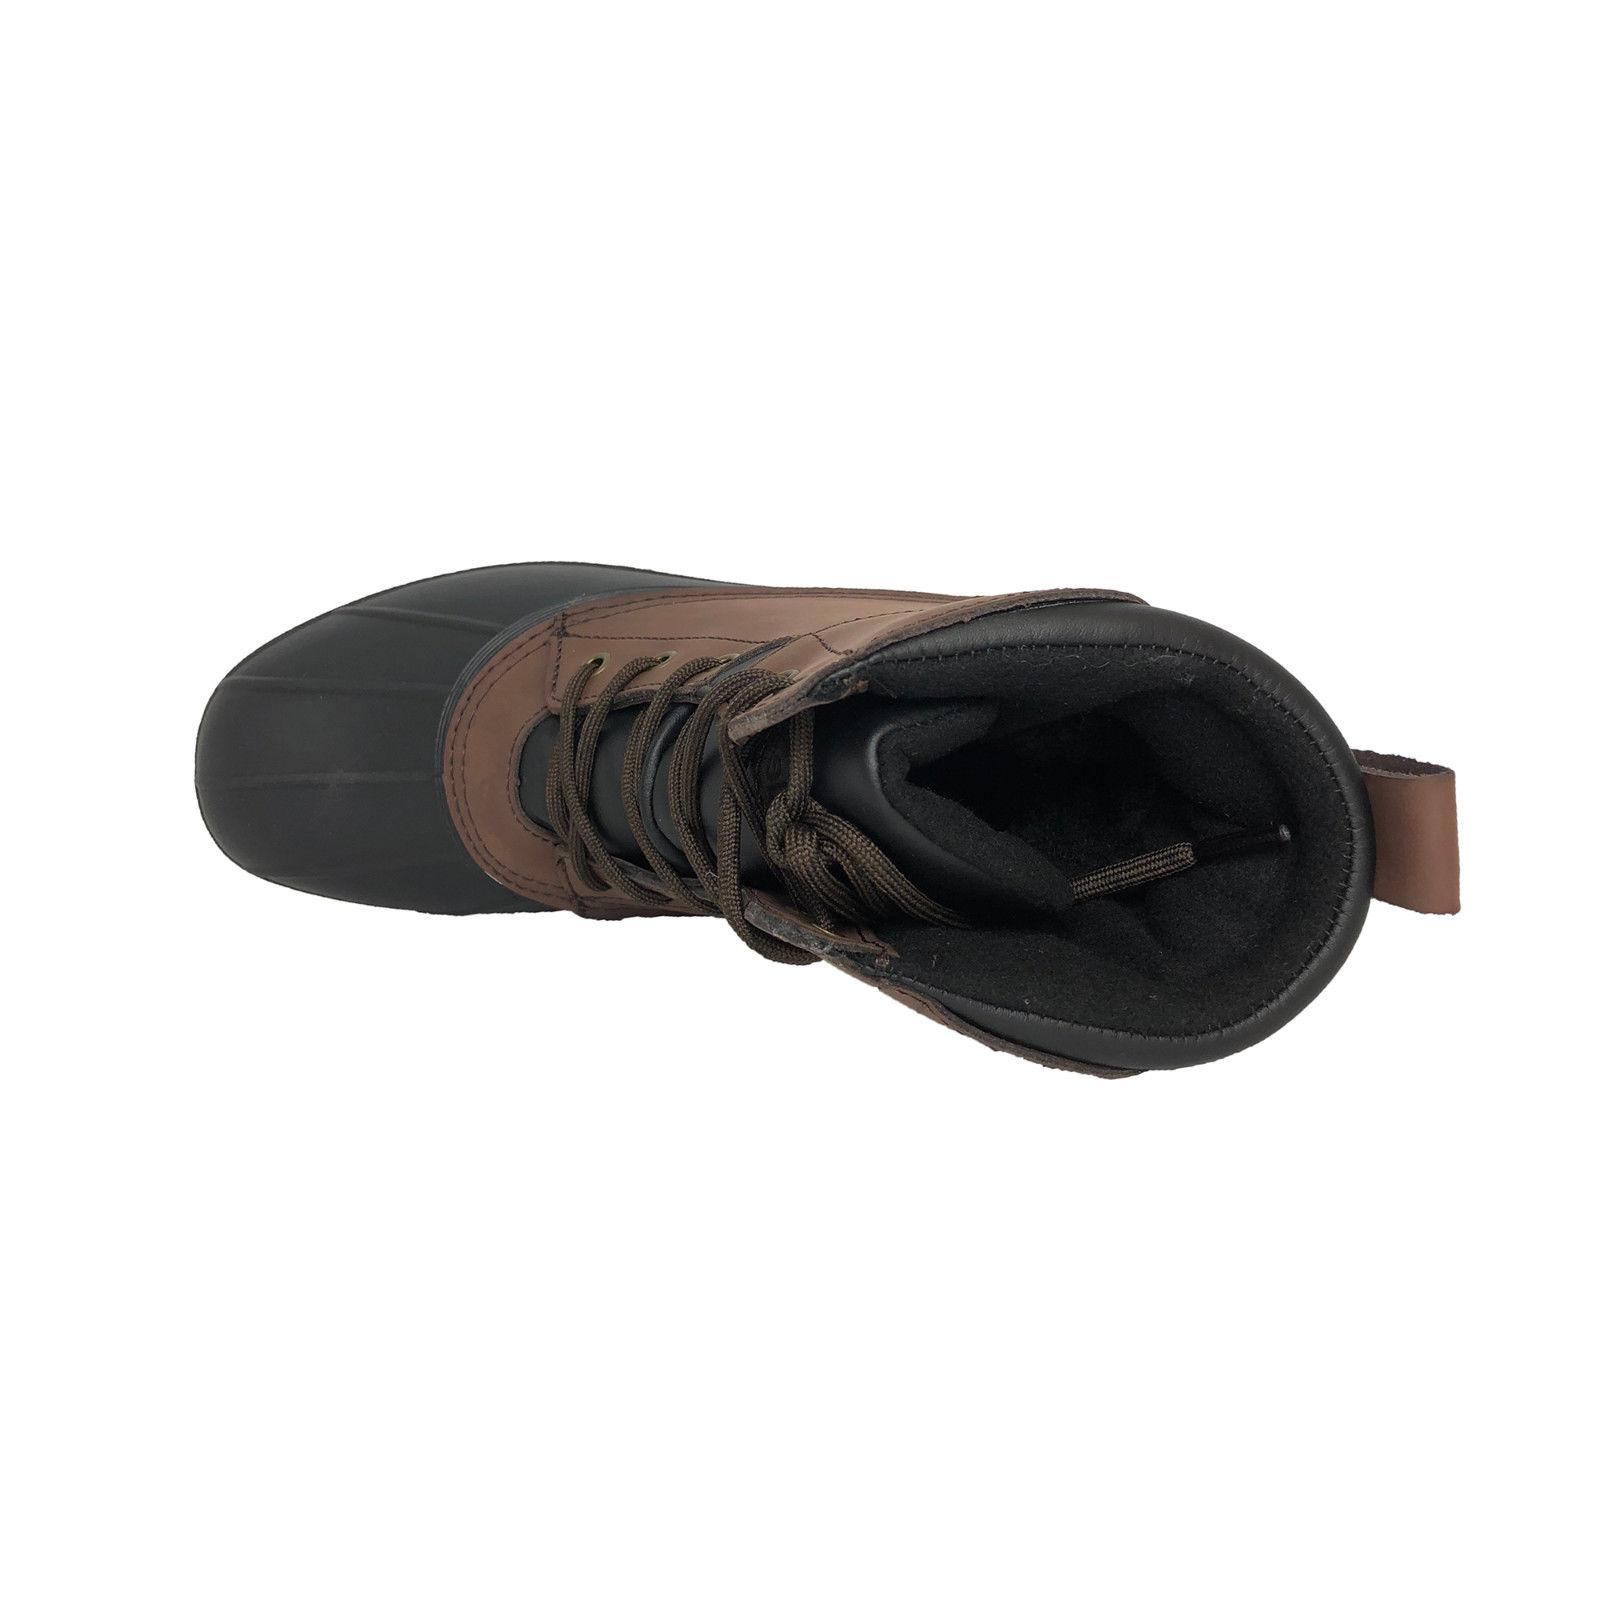 Northside Lewiston Mens Boots Waterproof Fully Lined